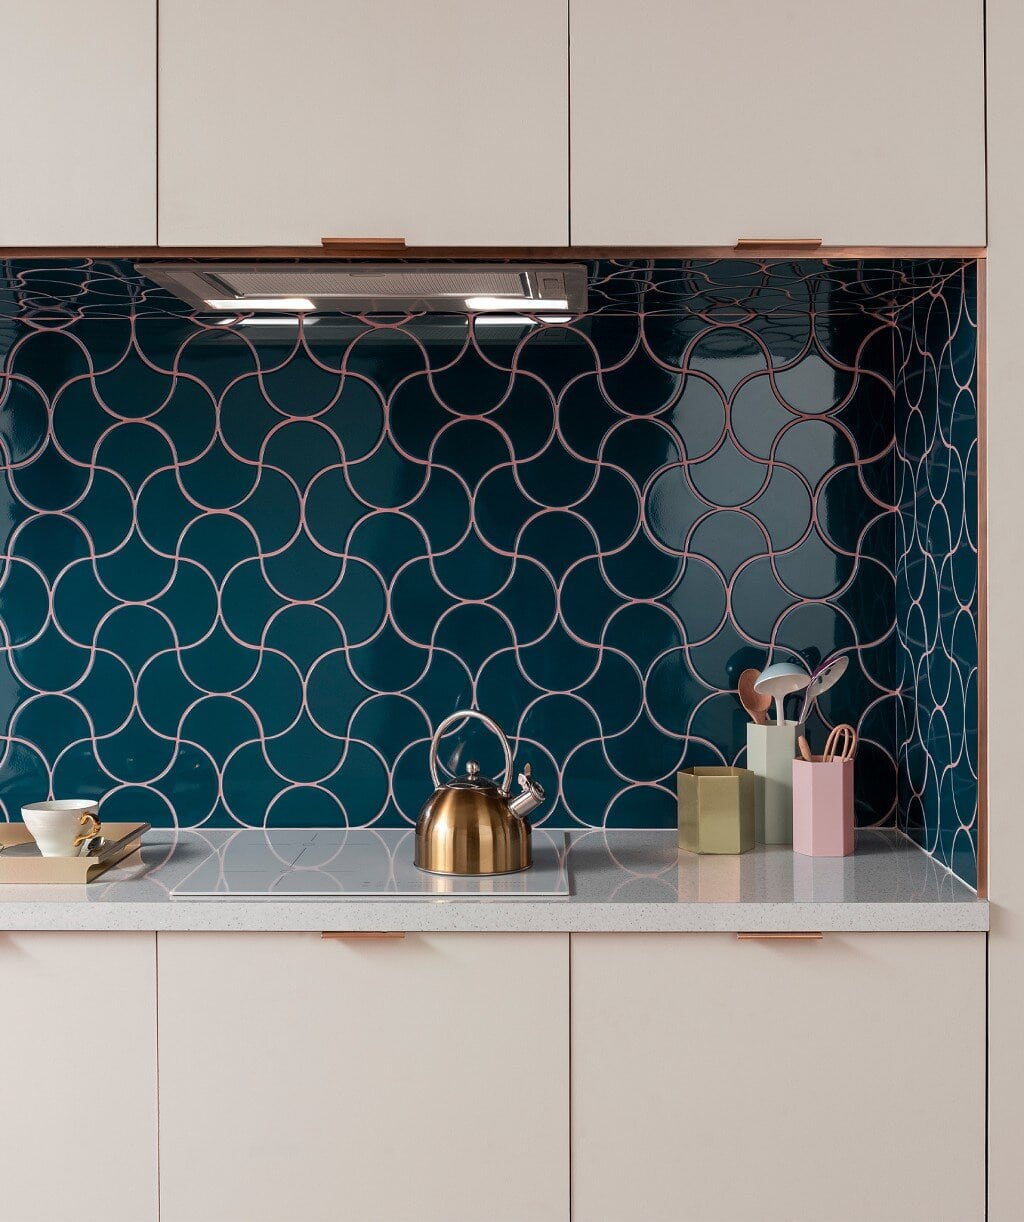 Syren tile with pink grouting in the kitchen. Credit: Topps Tiles